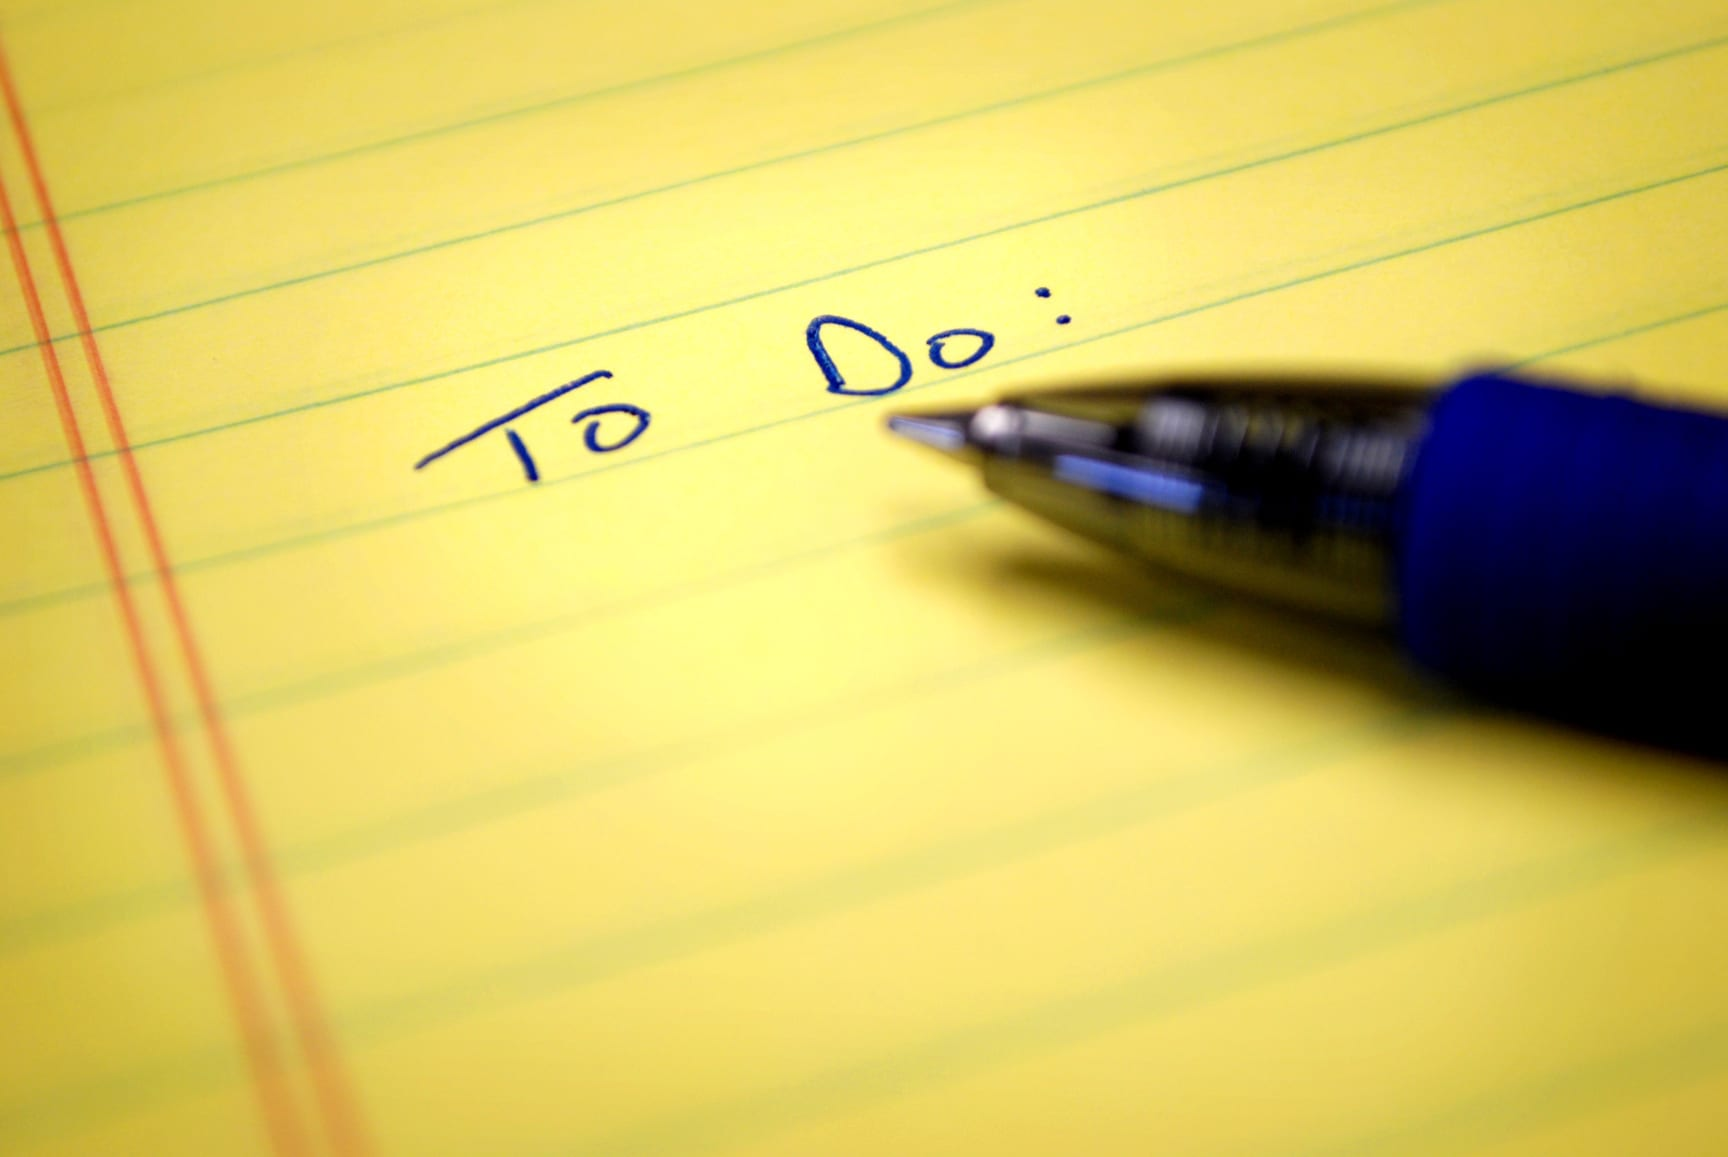 Work smarter by planning your day better